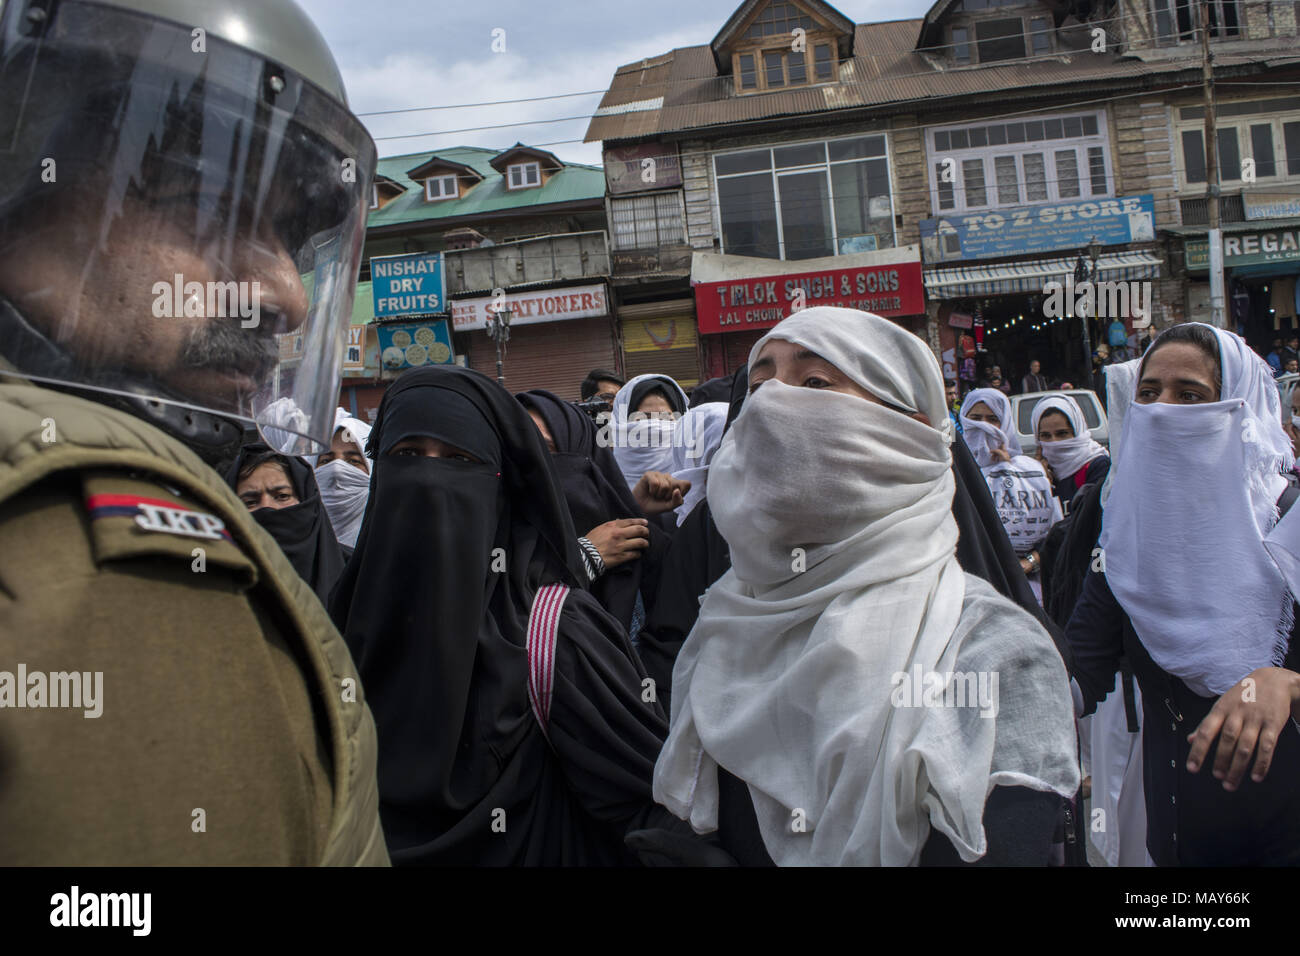 Srinagar, Jammu And Kashmir, India. 5th Apr, 2018. Kashmiri student protesters shout Anti Indian and Pro freedom slogans in front of a Indian Security force in Srinagar, the summer capital of Indian administered Kashmir, India. Heavy clashes erupted between Kashmiri students and Indian government forces in different parts of Srinagar on Thursday. Extreme Violence erupted after the students of different educational institutes and staged protests in the city's commercial hub Lalchowk. The authorities earlier in the day had ordered all colleges and higher secondary schools open. Students prote - Stock Image